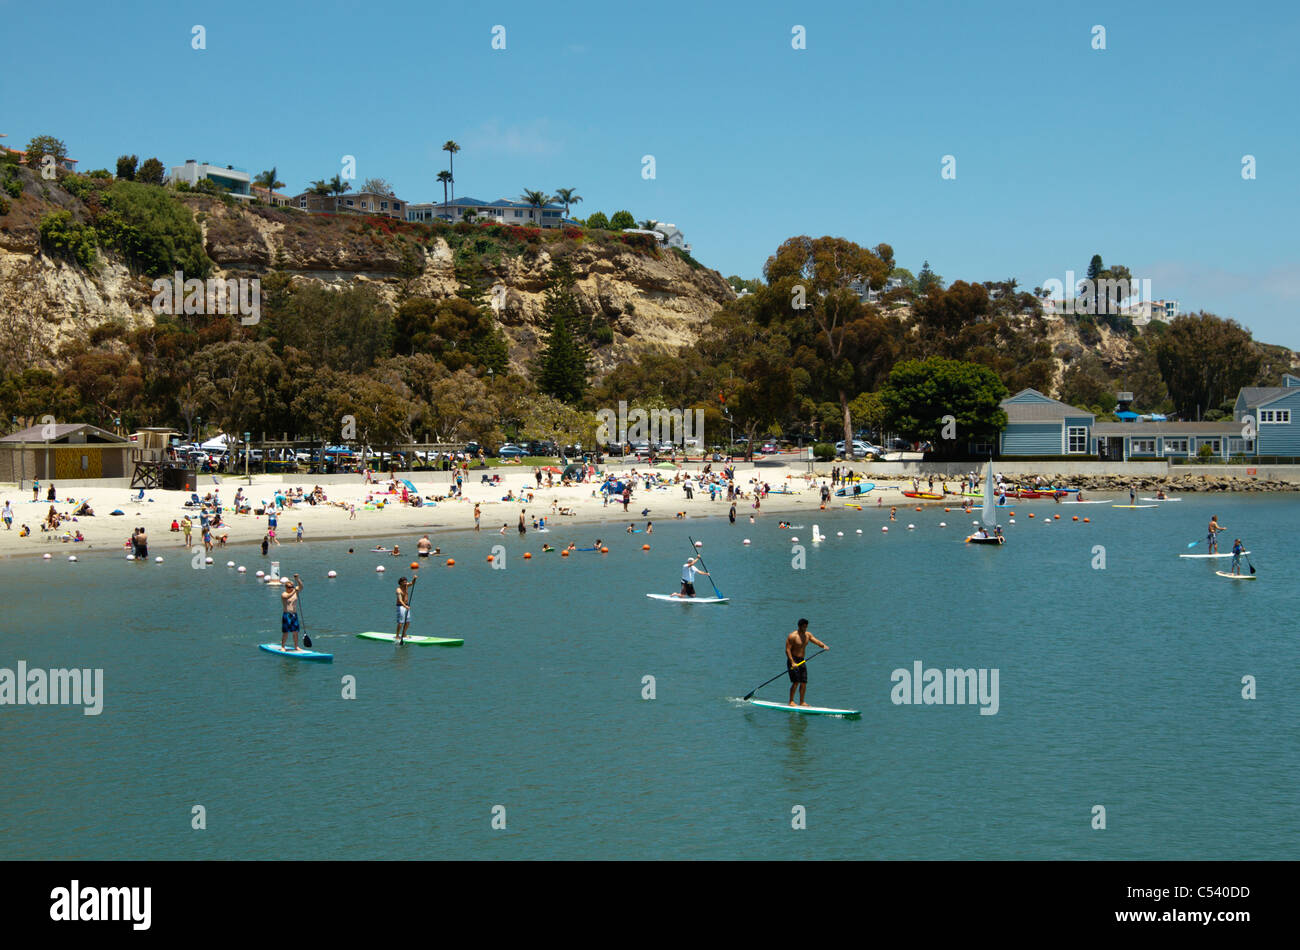 Stand up paddling in Dana Point harbor, California, USA (June 2011) - Stock Image